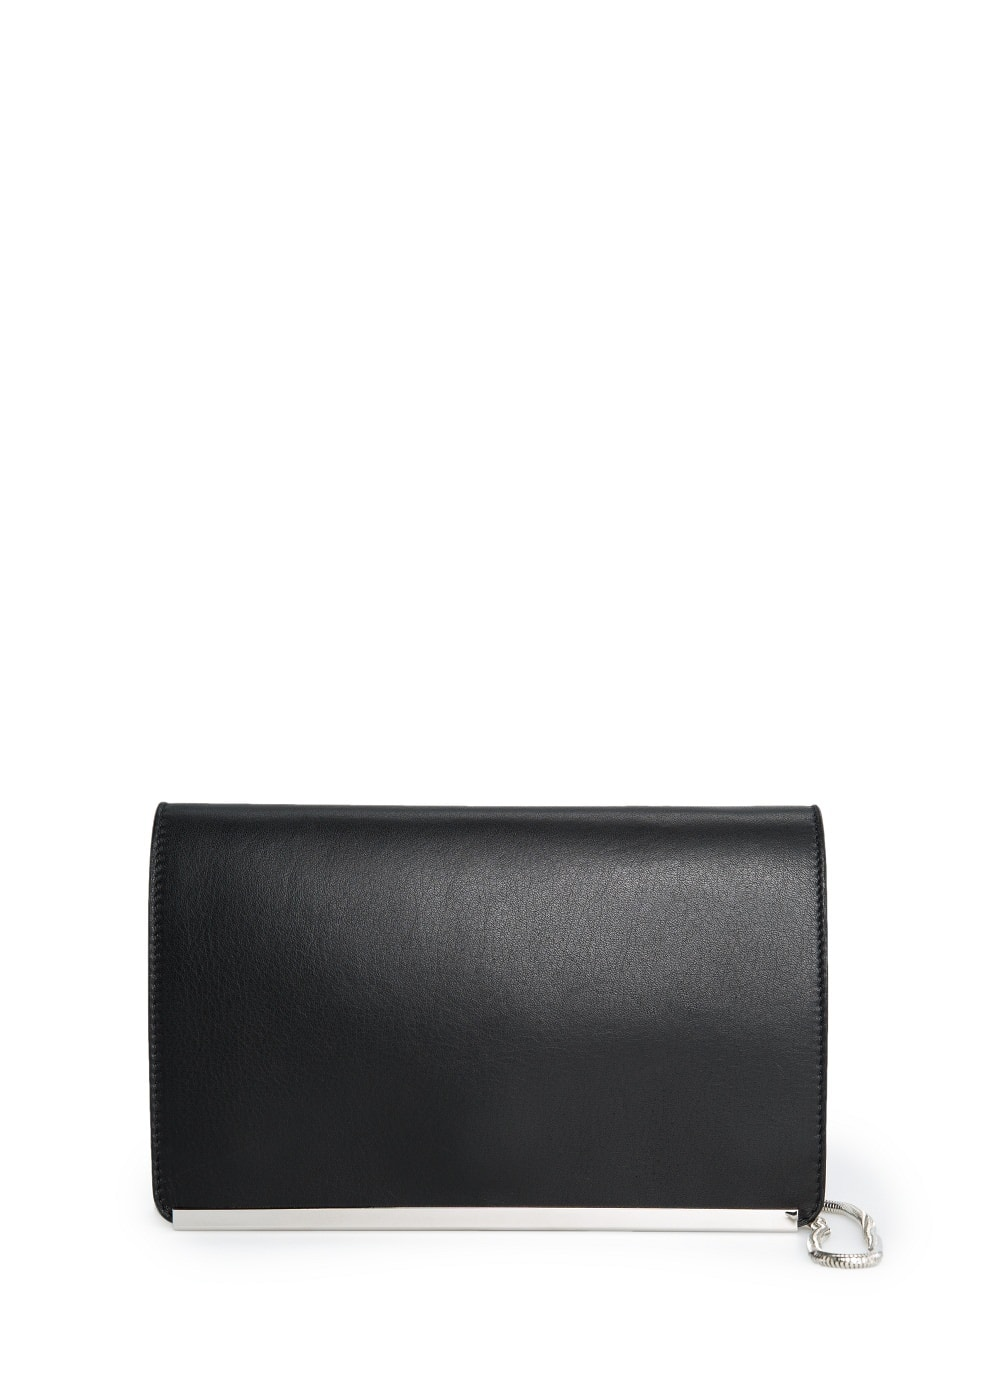 PREMIUM - Clutch rectangular piel